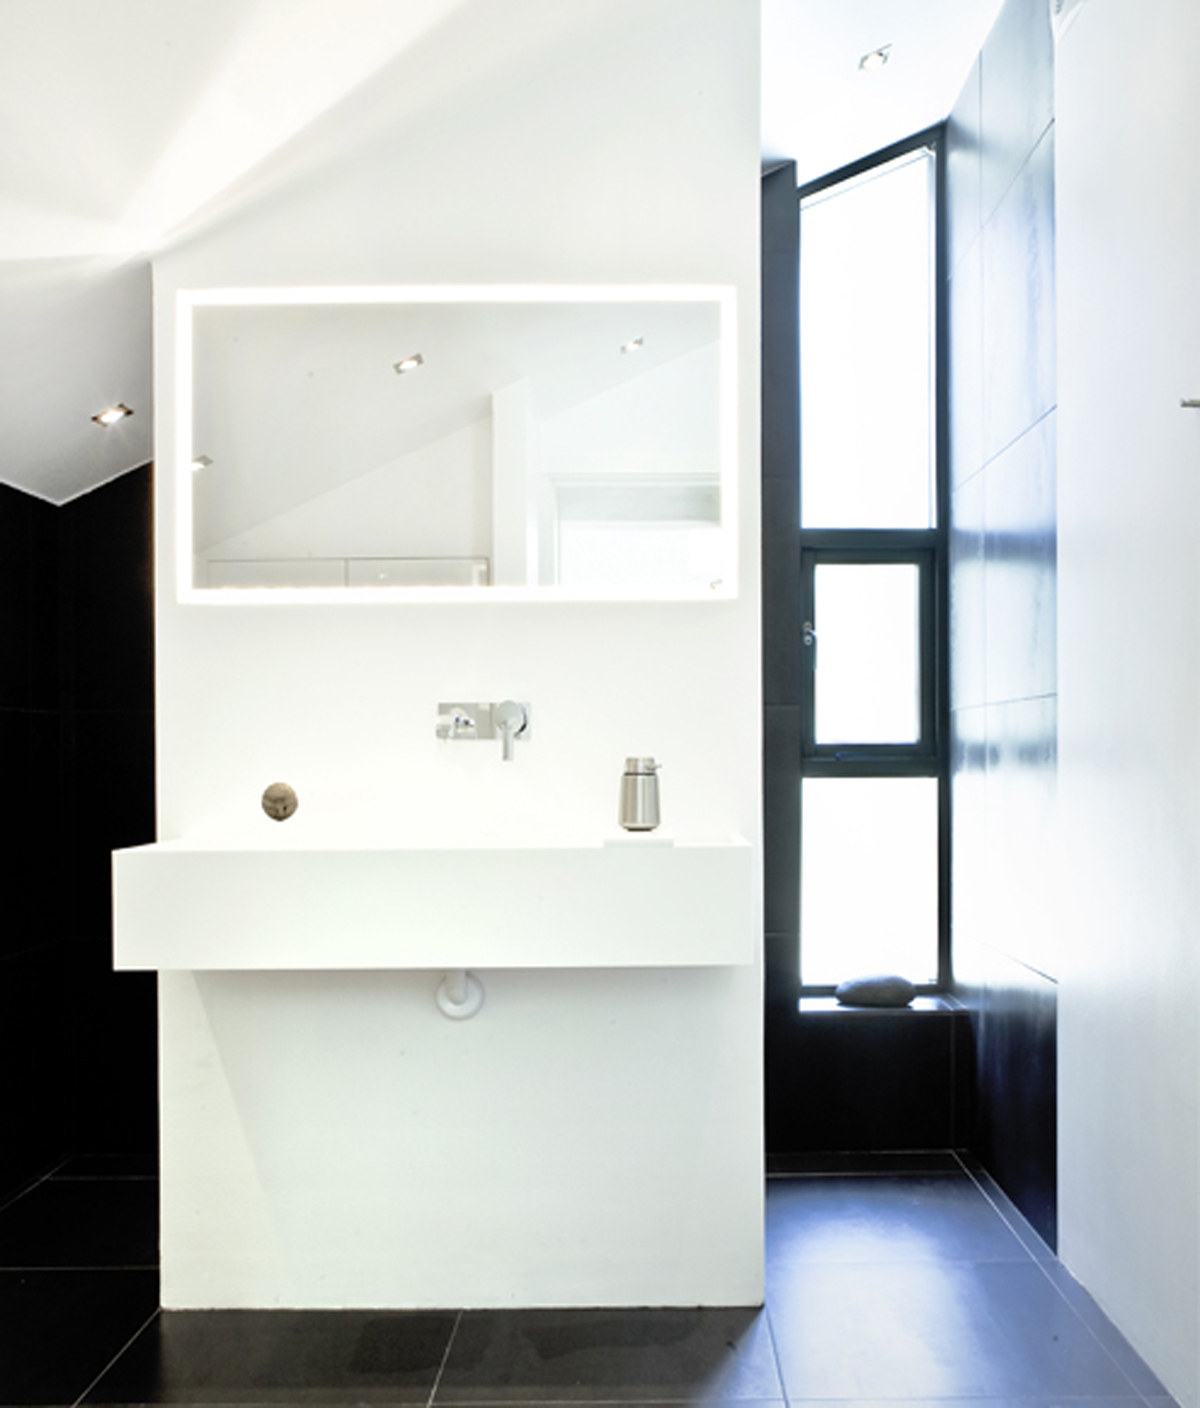 Beautifully Simple Interior in White Themes from NORM Architects - Bathroom